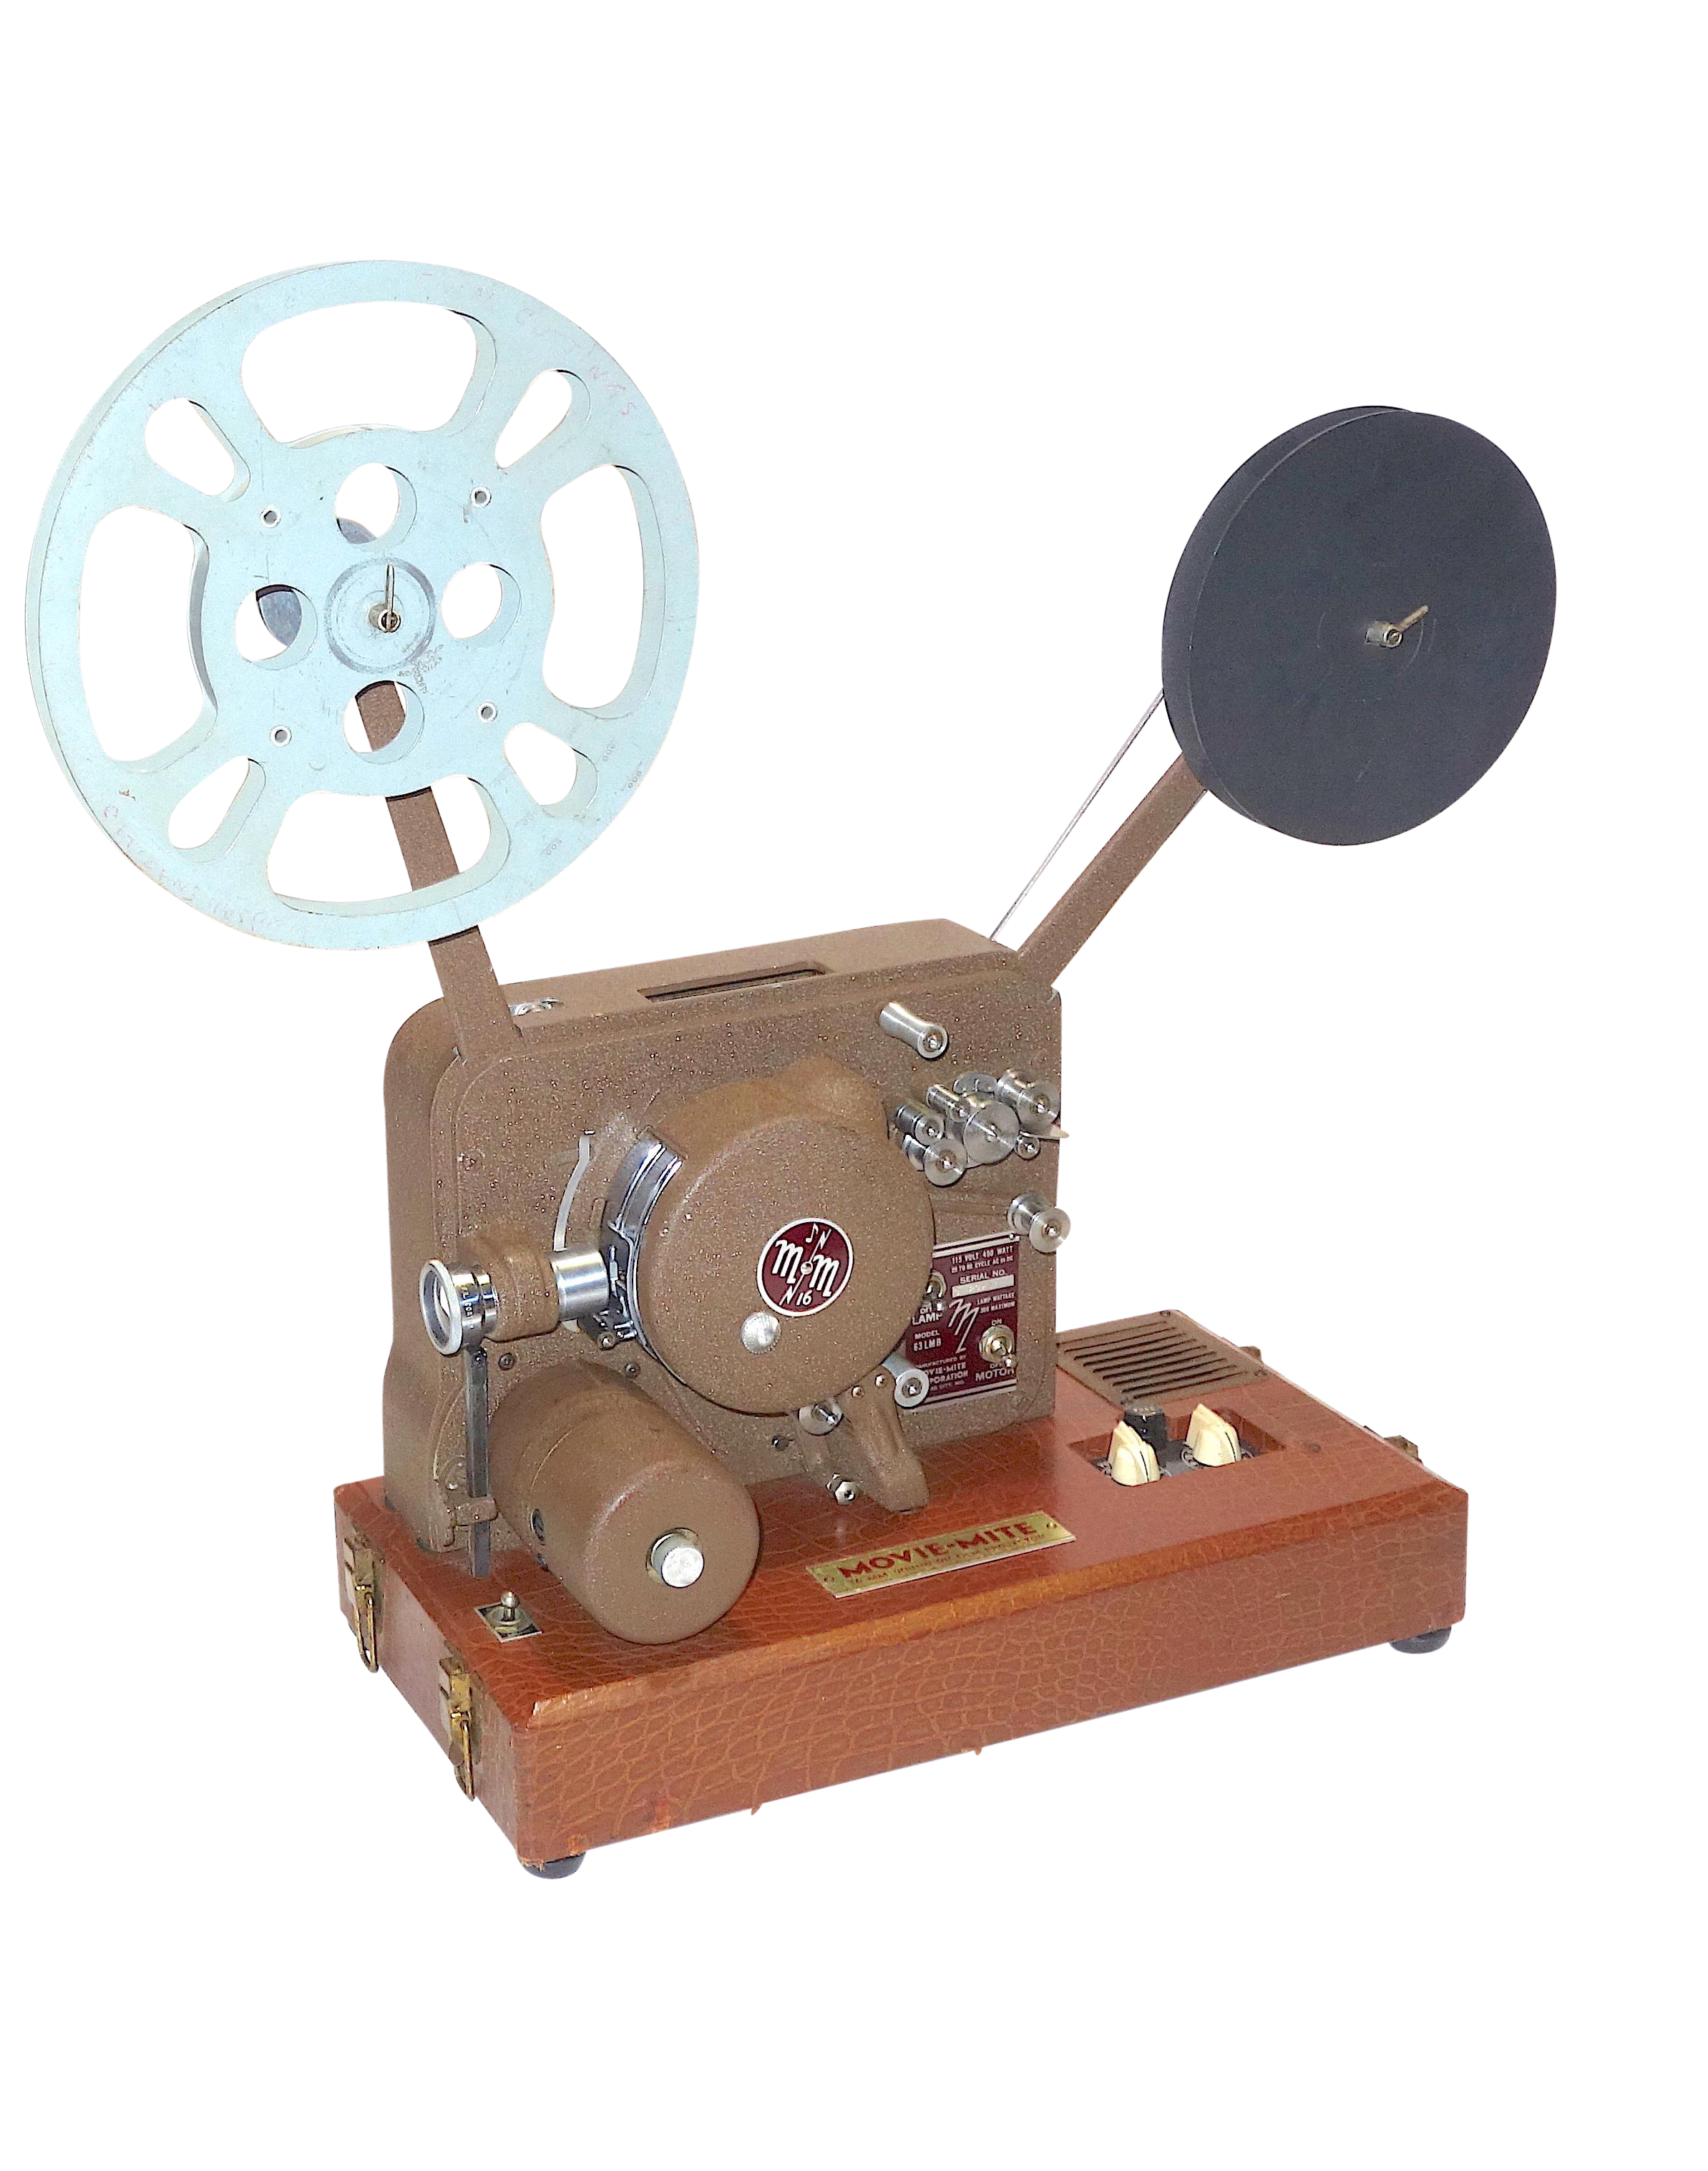 Lovely circa 1940s sound and picture movie projector art deco design all original 16mm artifact decaso